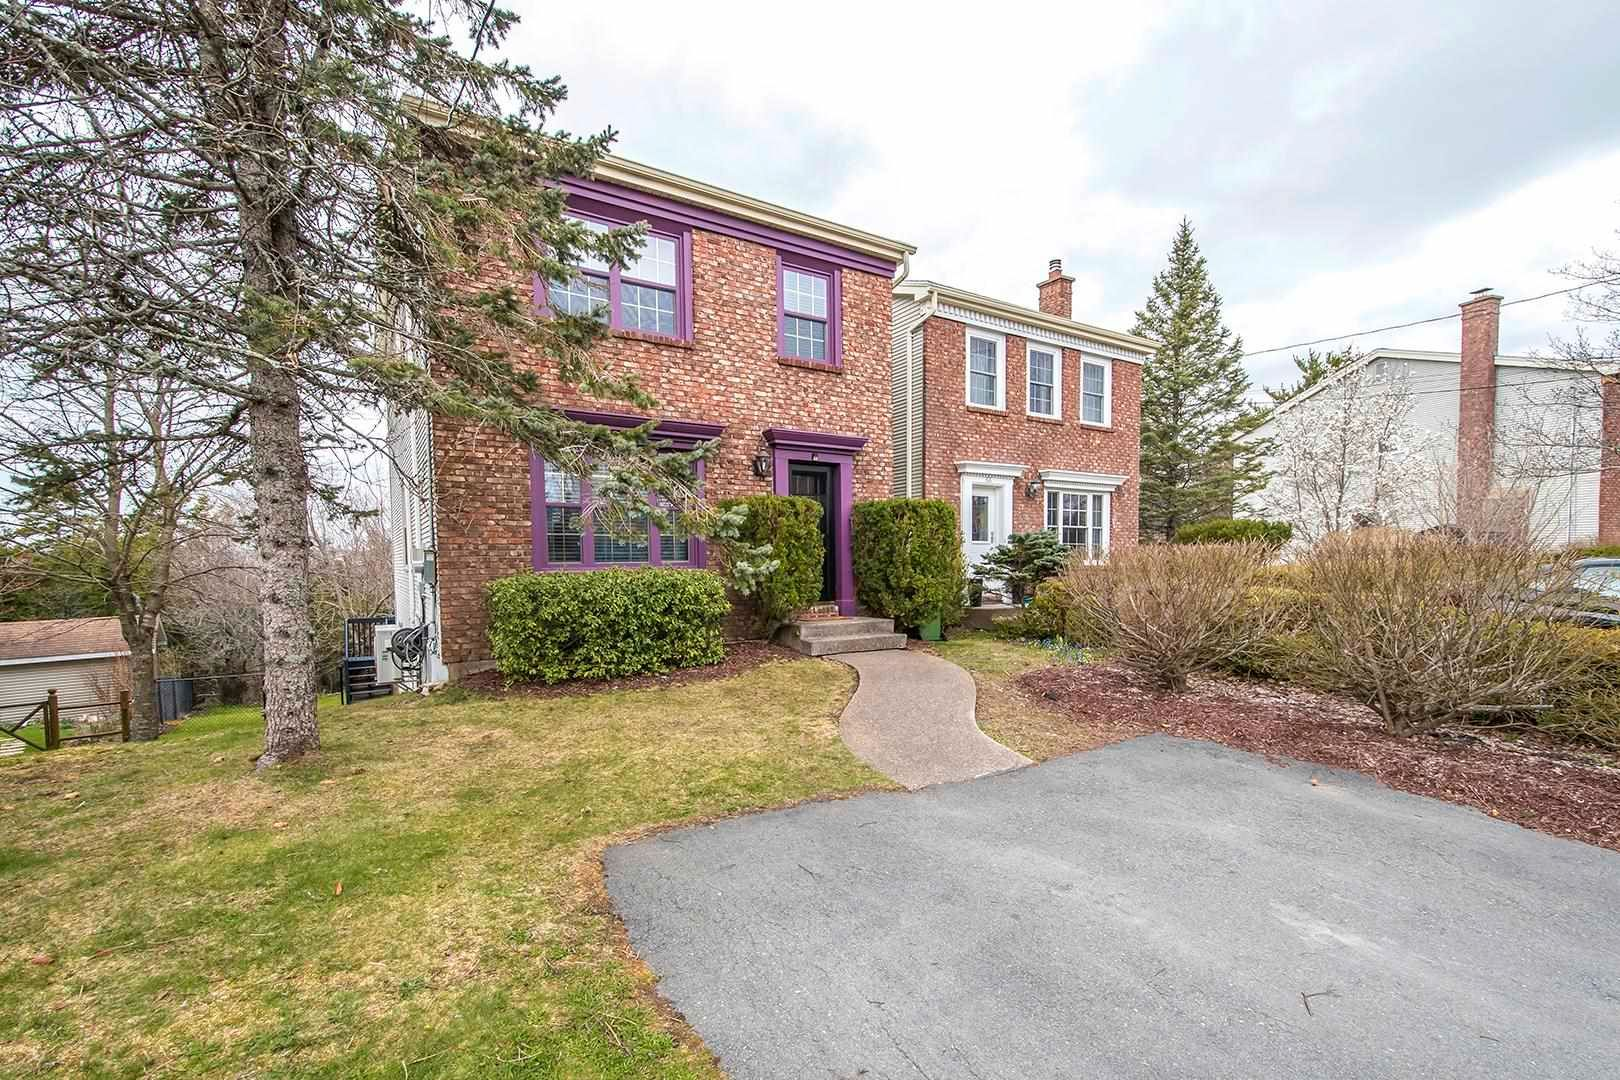 Photo 2: Photos: 64 Roy Crescent in Bedford: 20-Bedford Residential for sale (Halifax-Dartmouth)  : MLS®# 202110846